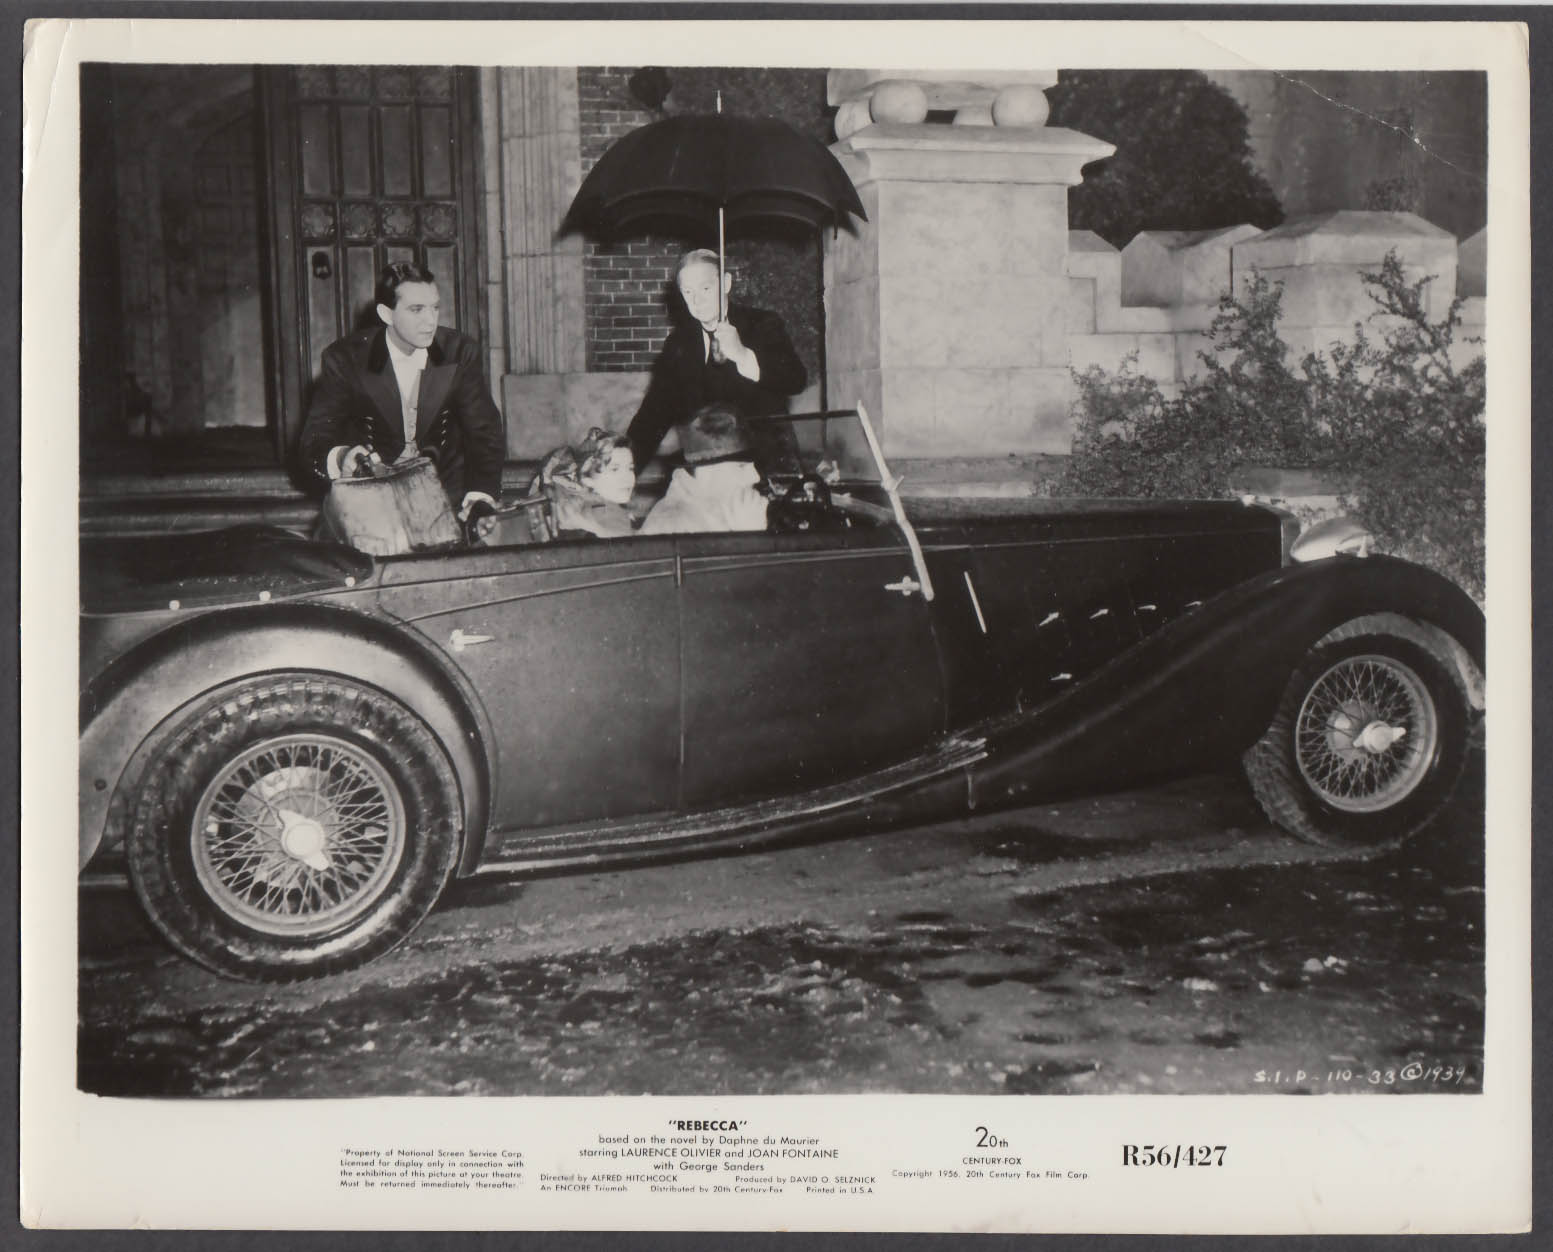 Joan Fontaine Laurence Olivier in convertible Rebecca 8x10 publicity photo 1940